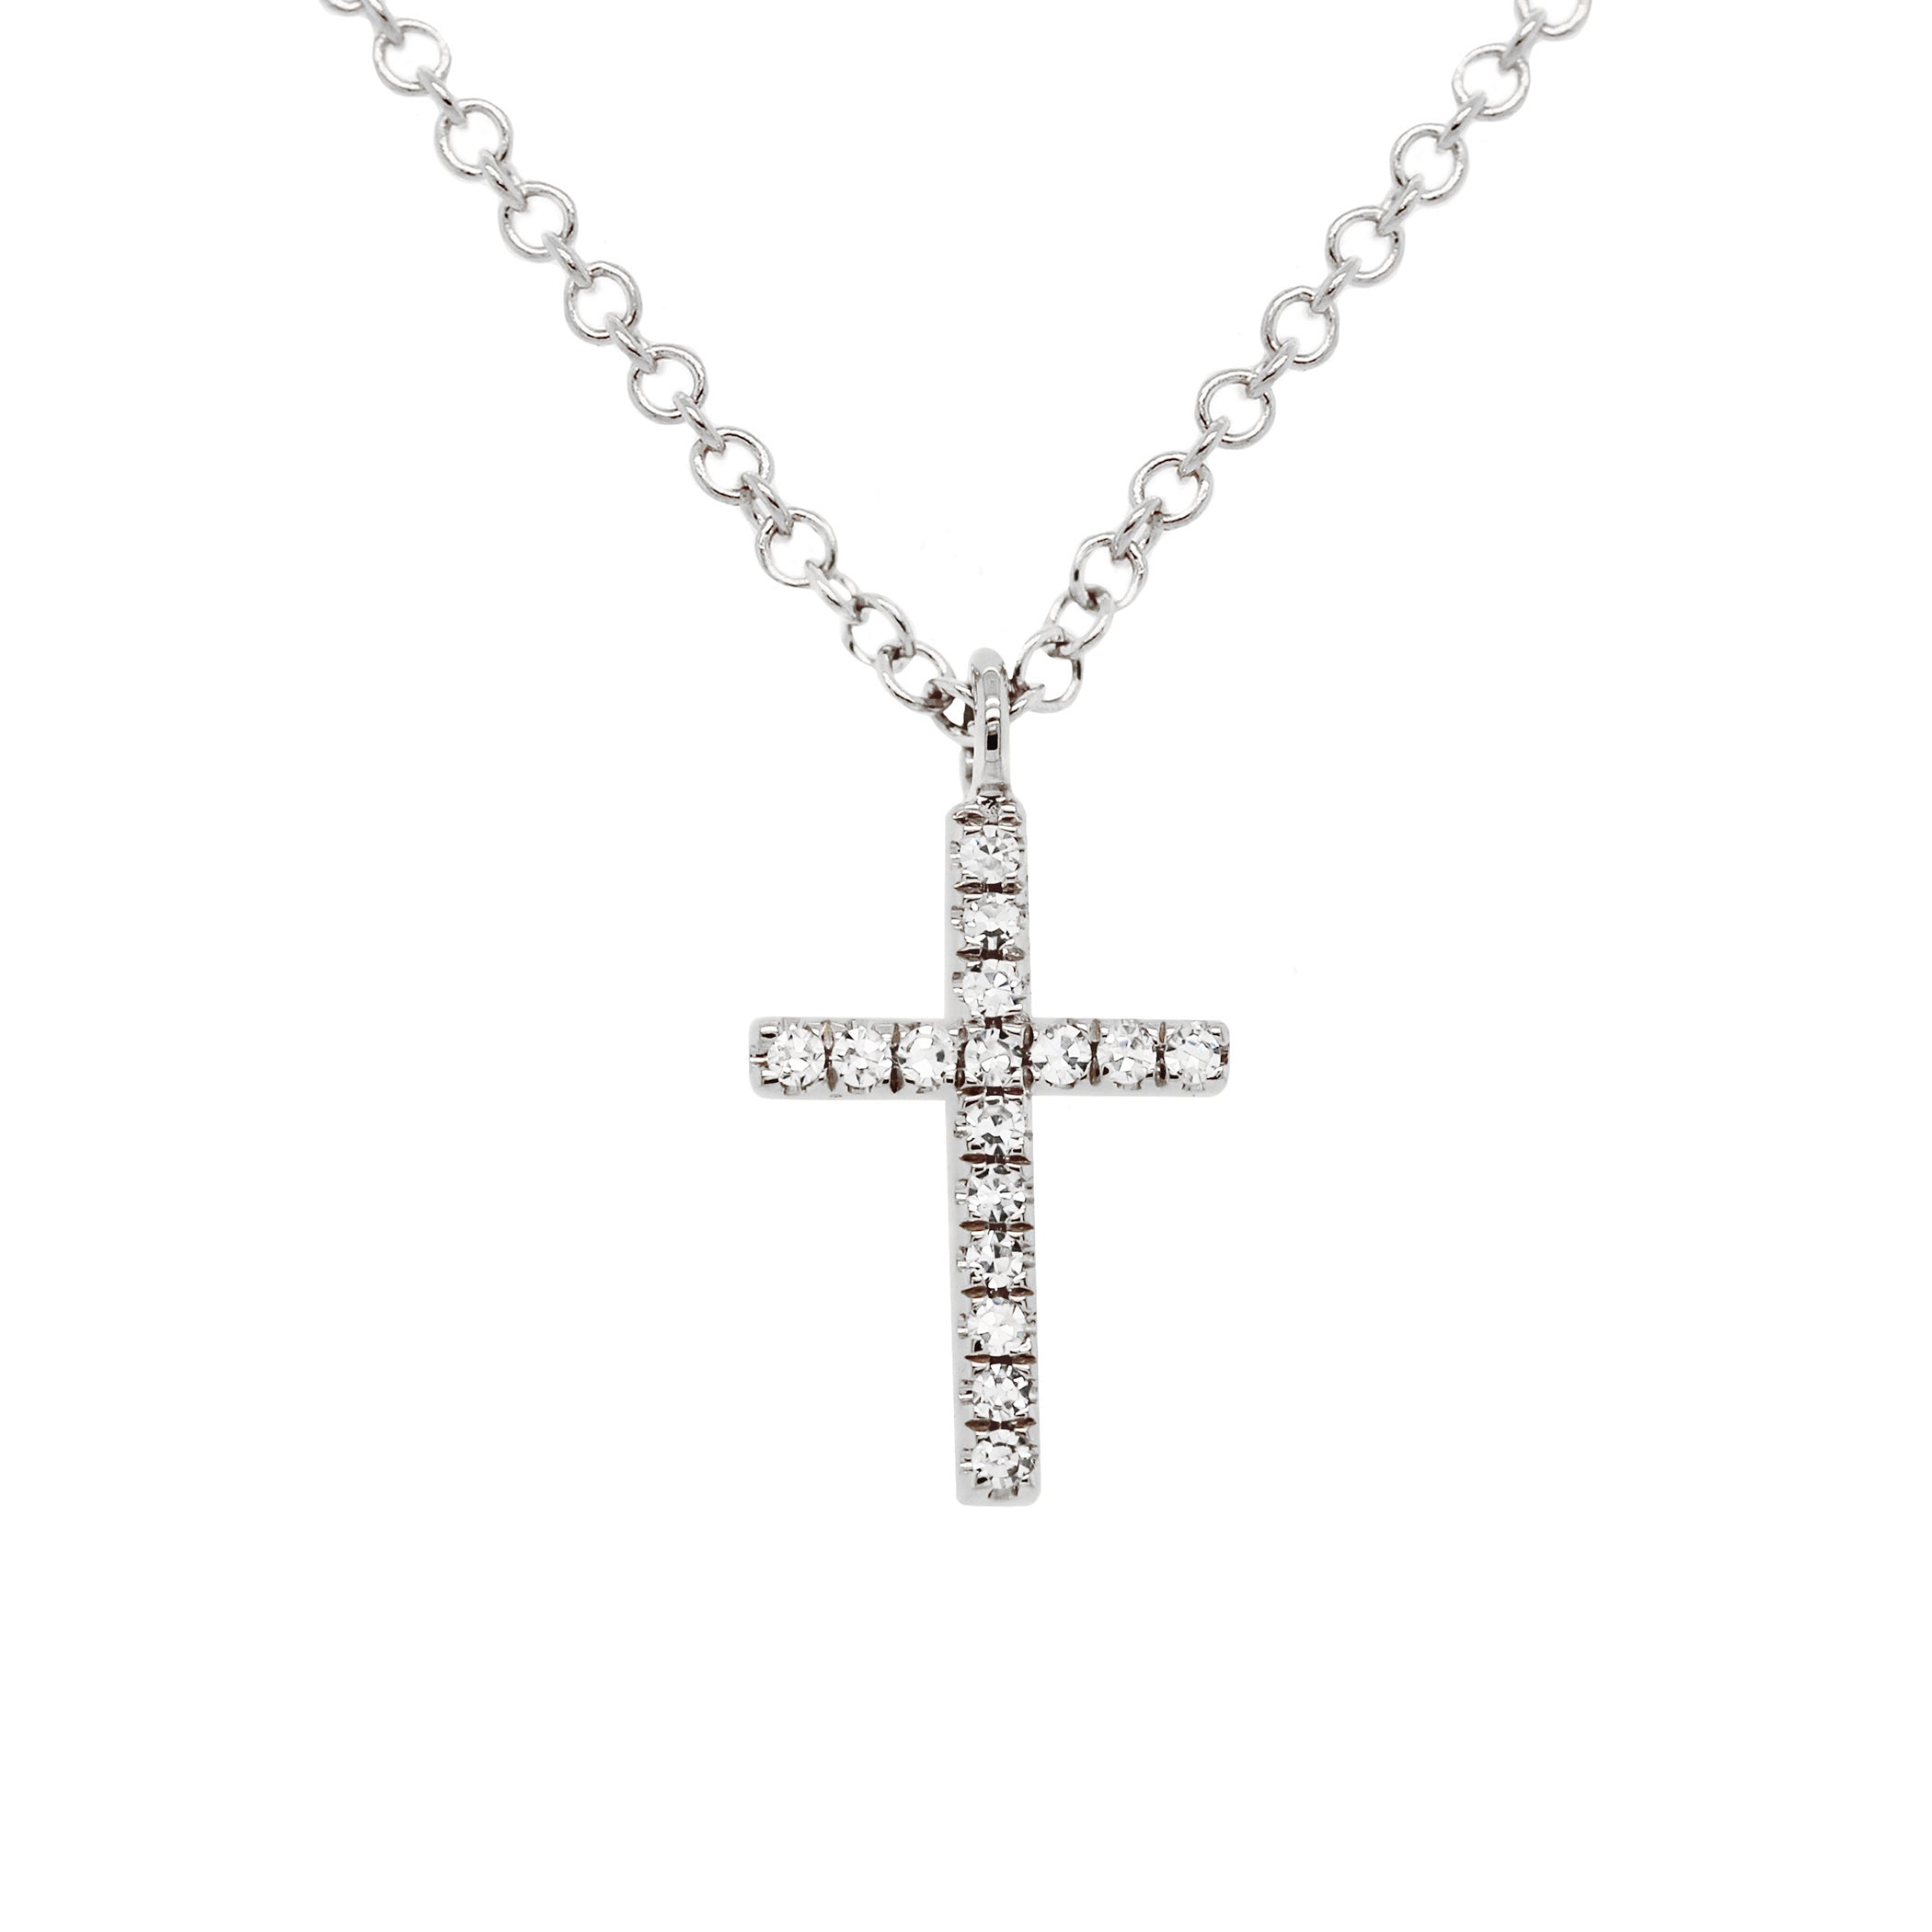 14K SMALL DANGLING DIAMOND PAVE CROSS NECKLACE